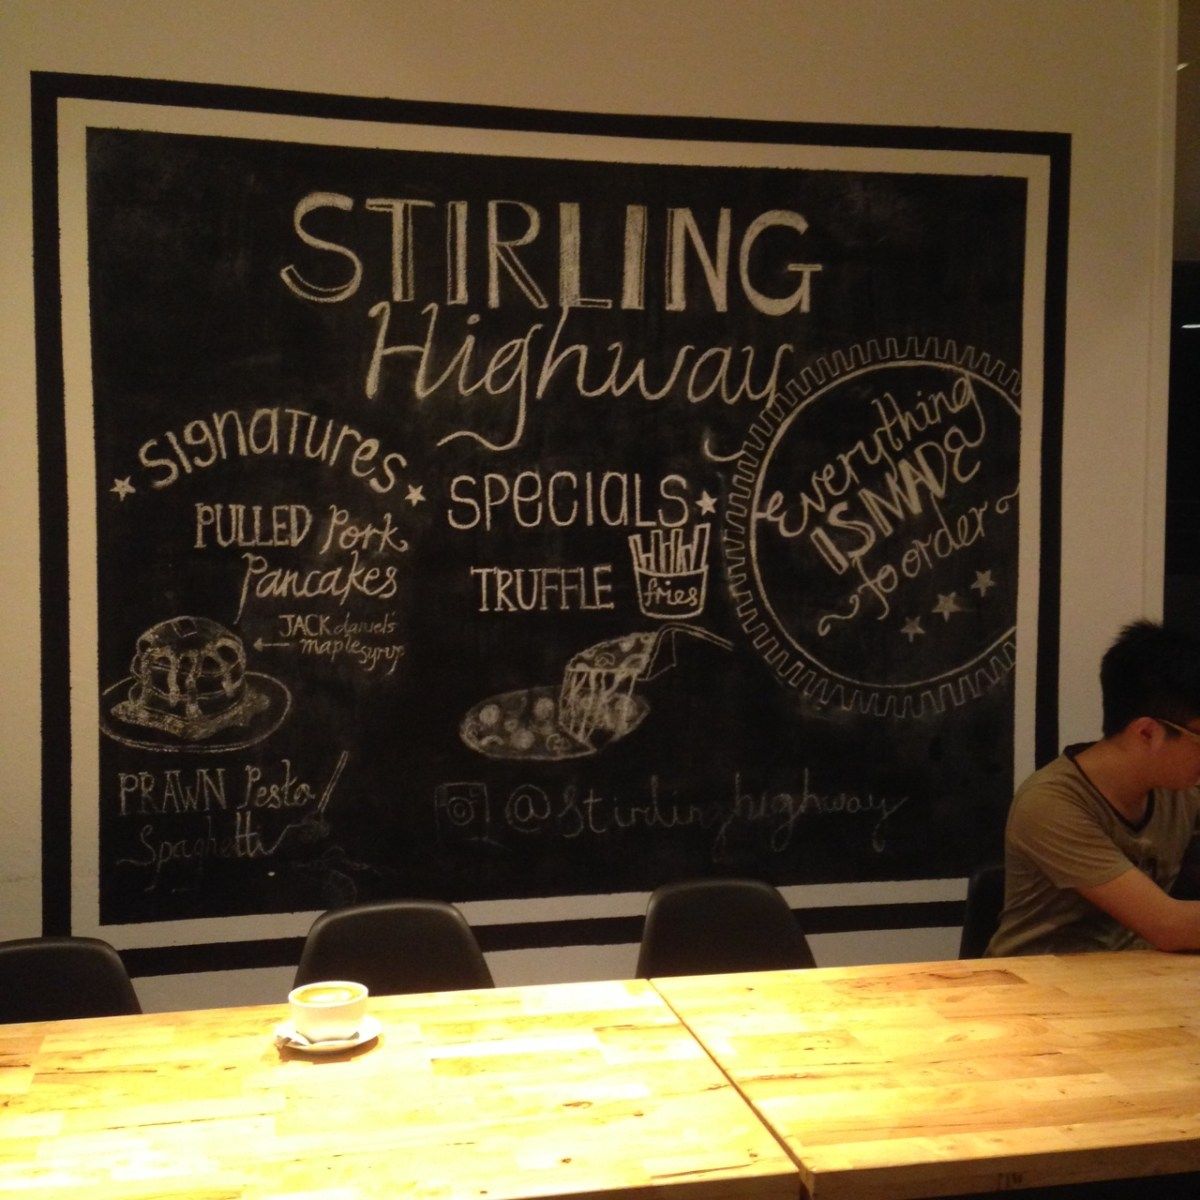 Pandan Valley Condo: Stirling Highway Cafe